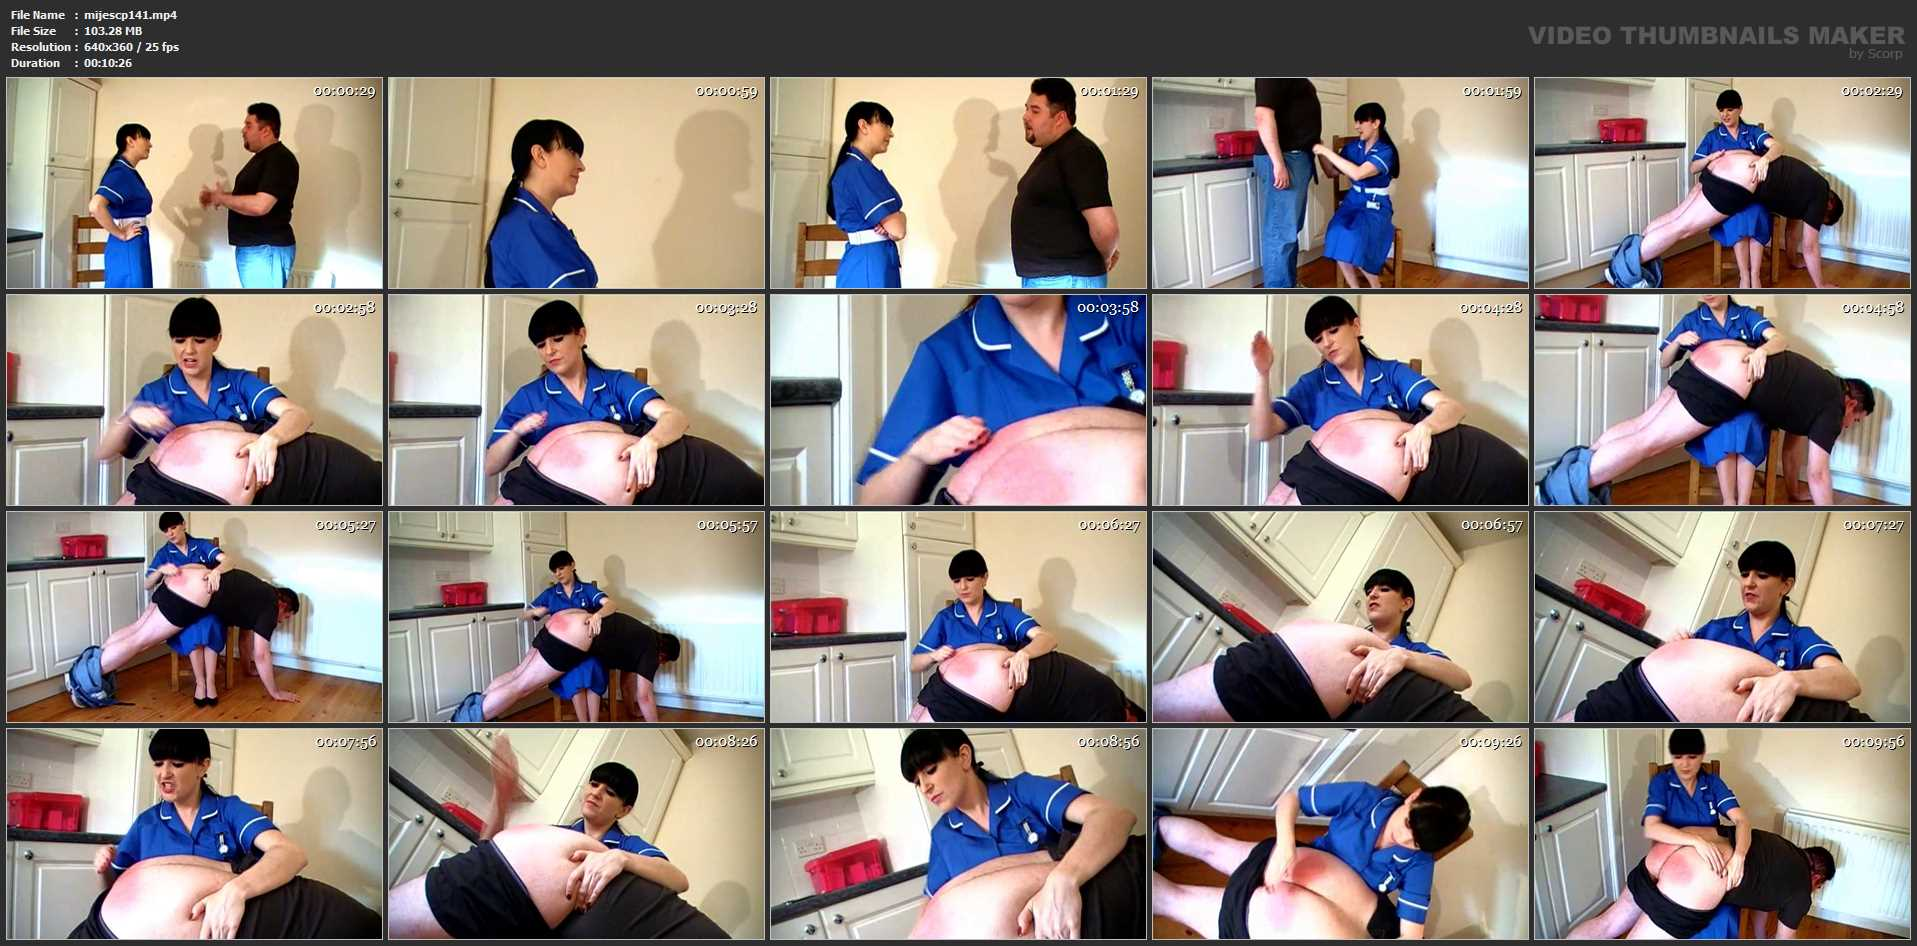 Jessica Wood In Scene: Skipped lecture - MISSJESSICAWOODVIDEOS - LQ/360p/MP4